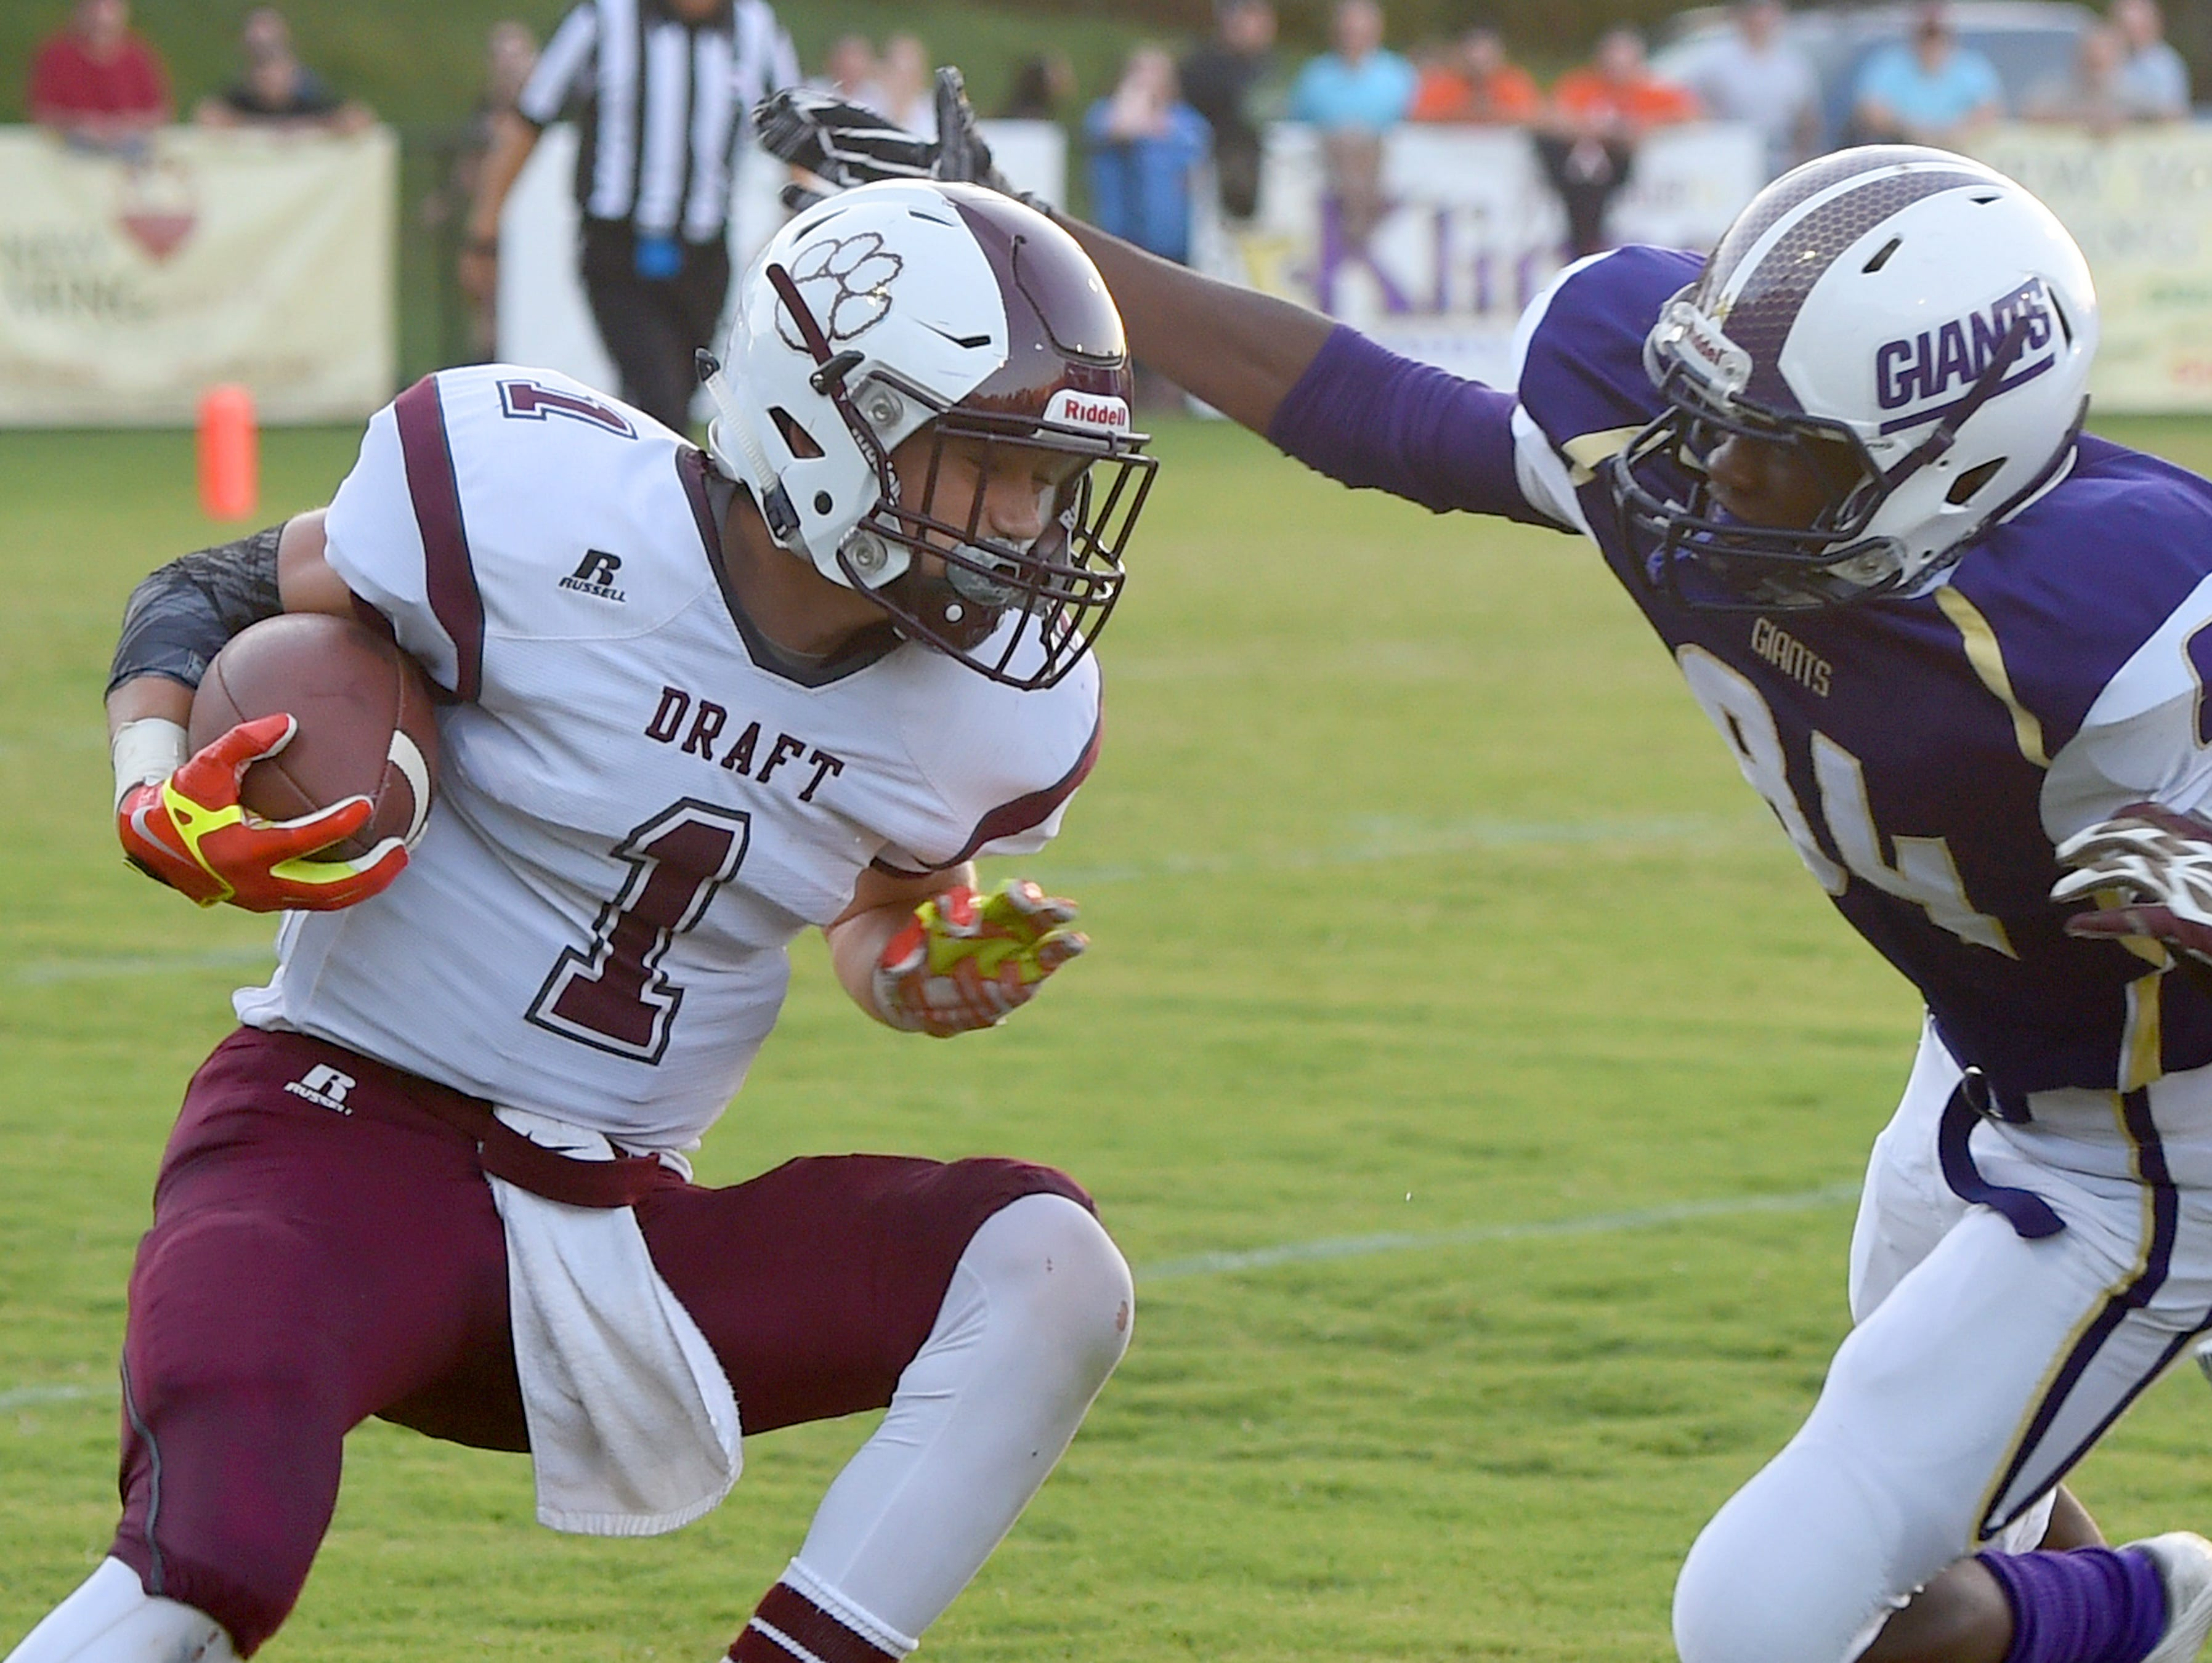 Stuarts Draft's Carson Peck has the ball as Waynesboro's Daviante Weems goes for a tackle during a football game played in Waynesboro on Friday, Sept. 11, 2015.